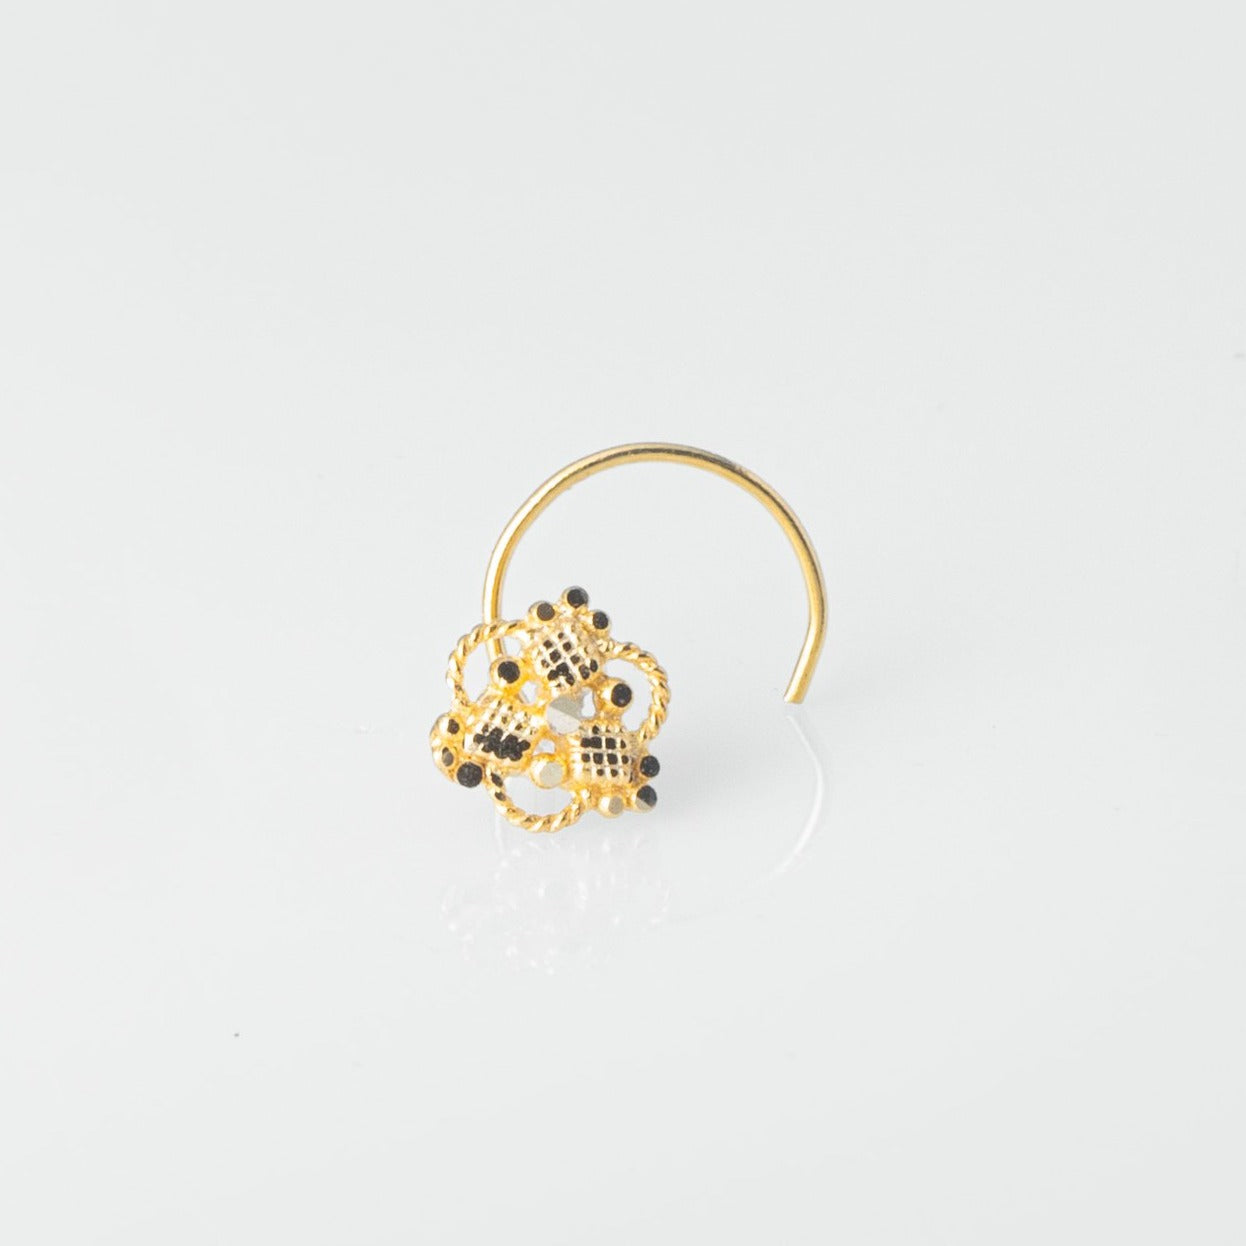 18ct Yellow Gold Wire Coil Back Nose Stud with Filigree Design NIP-5-130b